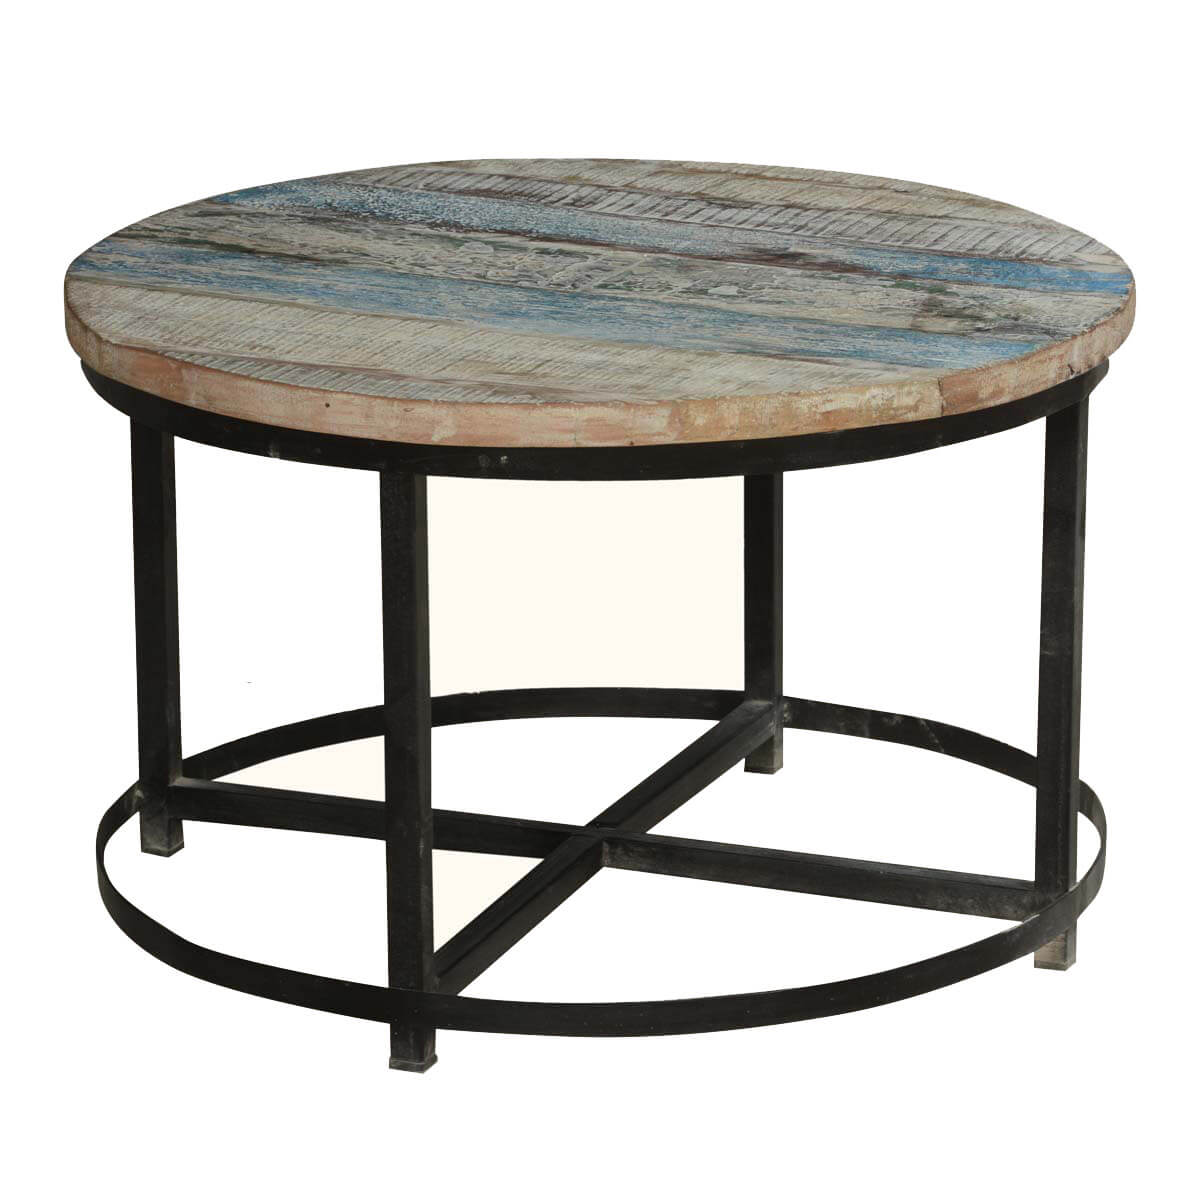 Industrial Coffee Table Bithlo Reclaimed Wood Top Round Industrial Coffee Table